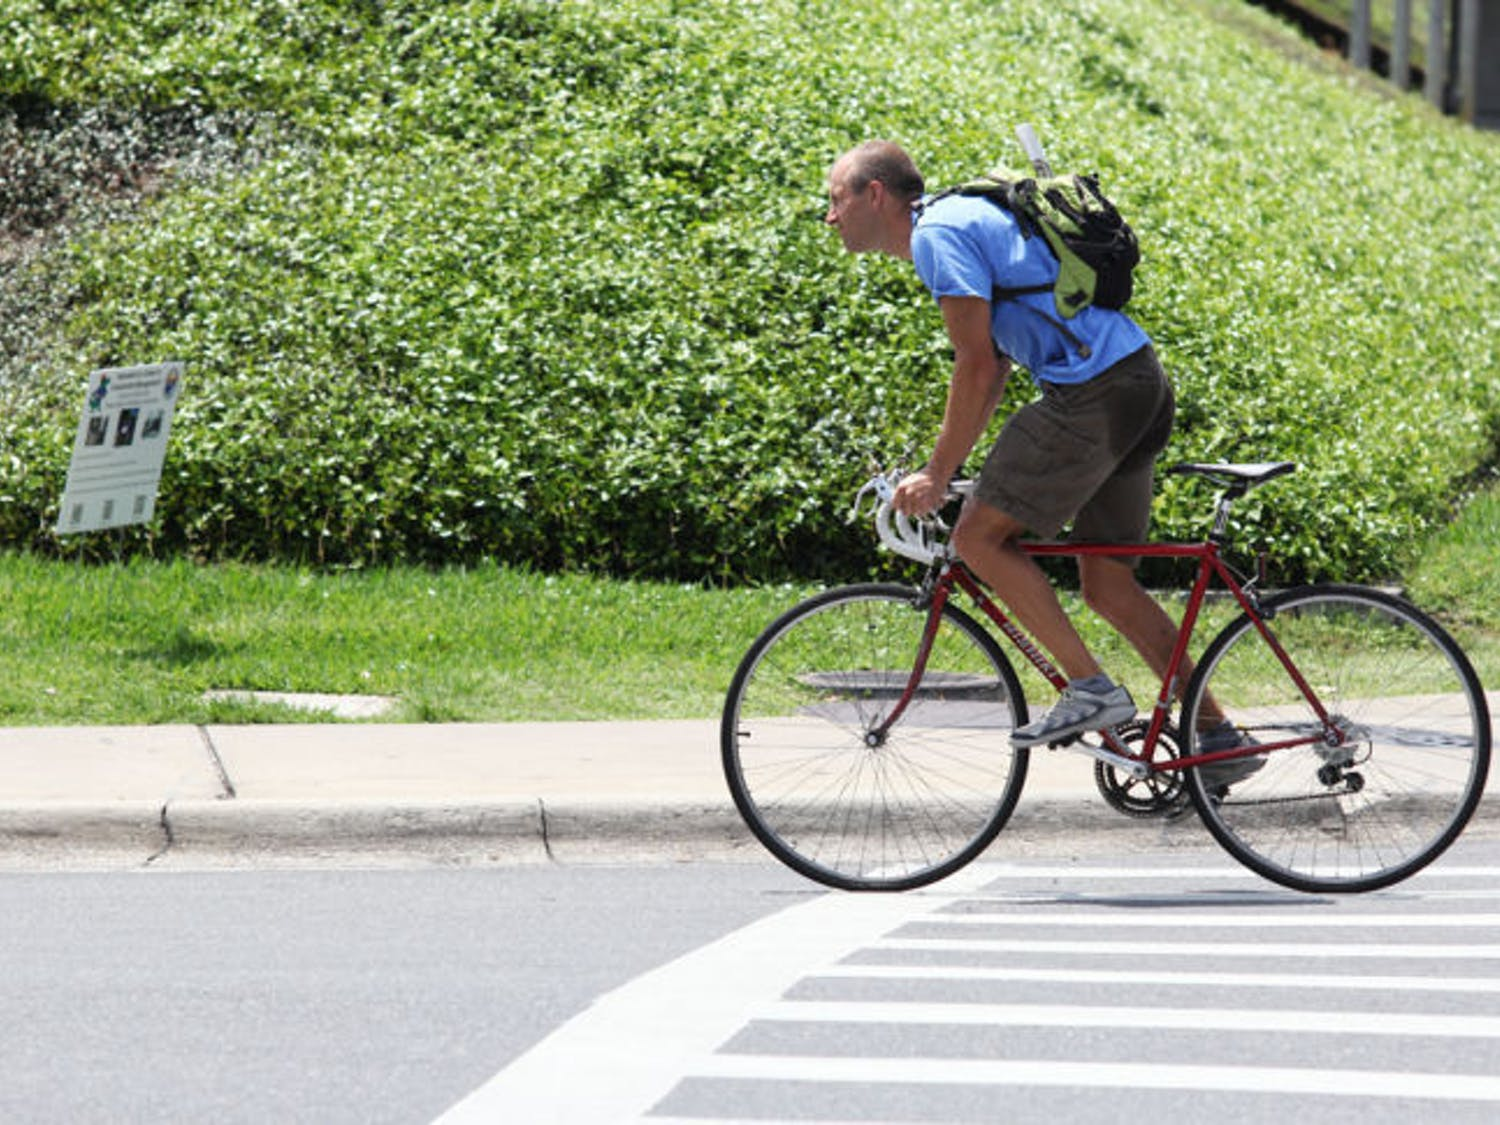 A commuter rides his bike east on Museum Road on Monday afternoon. A new study shows that biking to work can be healthier than regular exercise.